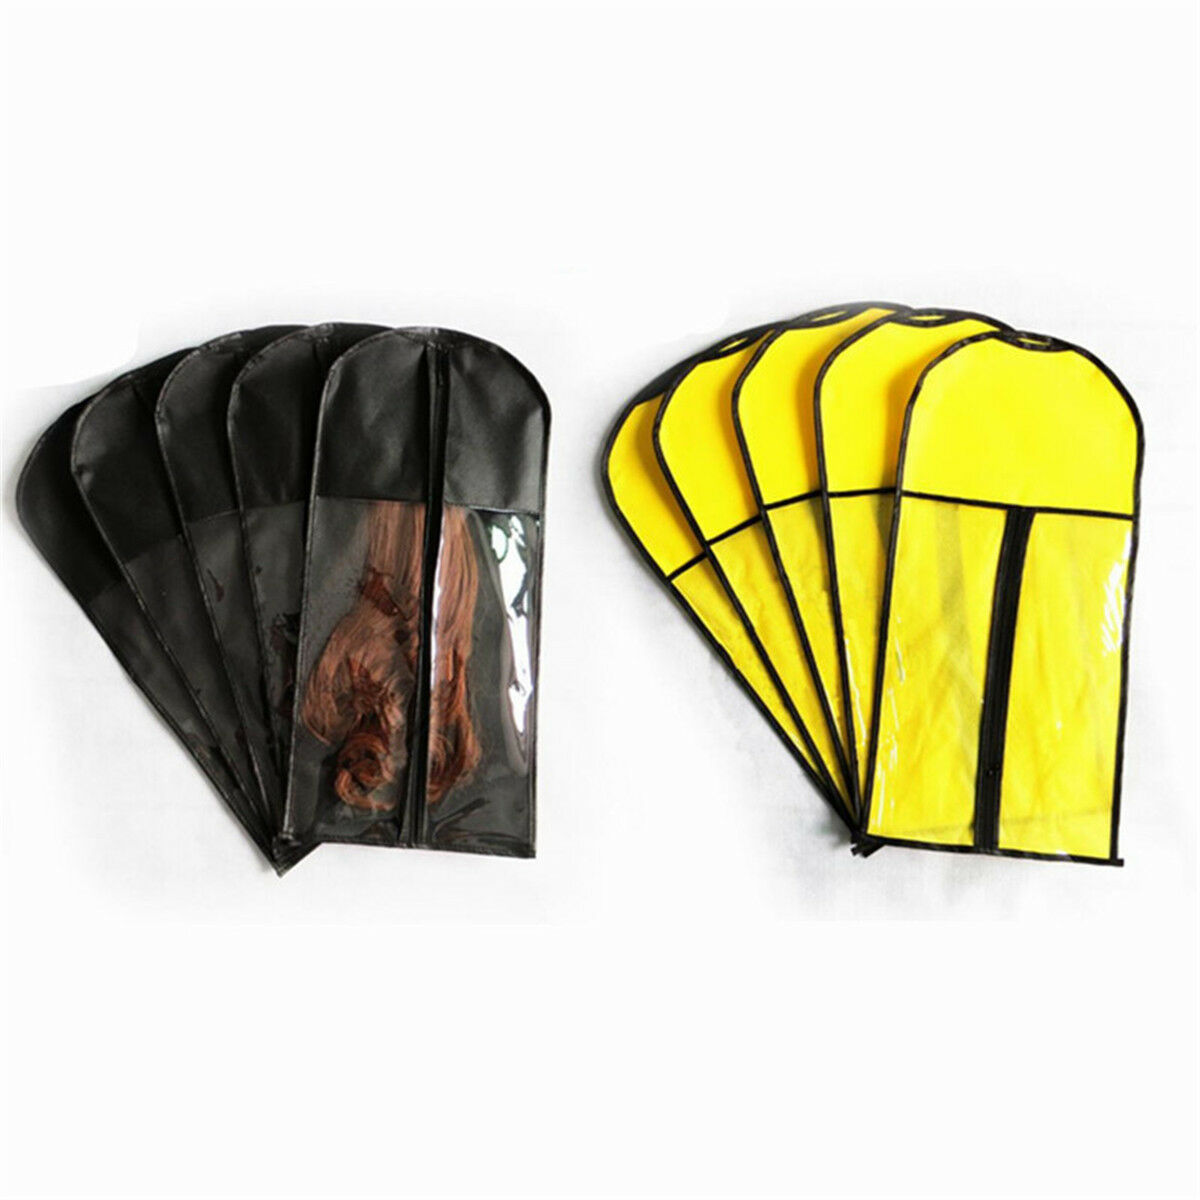 Wig Hangers Hair Extension Carrier Storage Case Wig Stands Dust Proof Bag 117